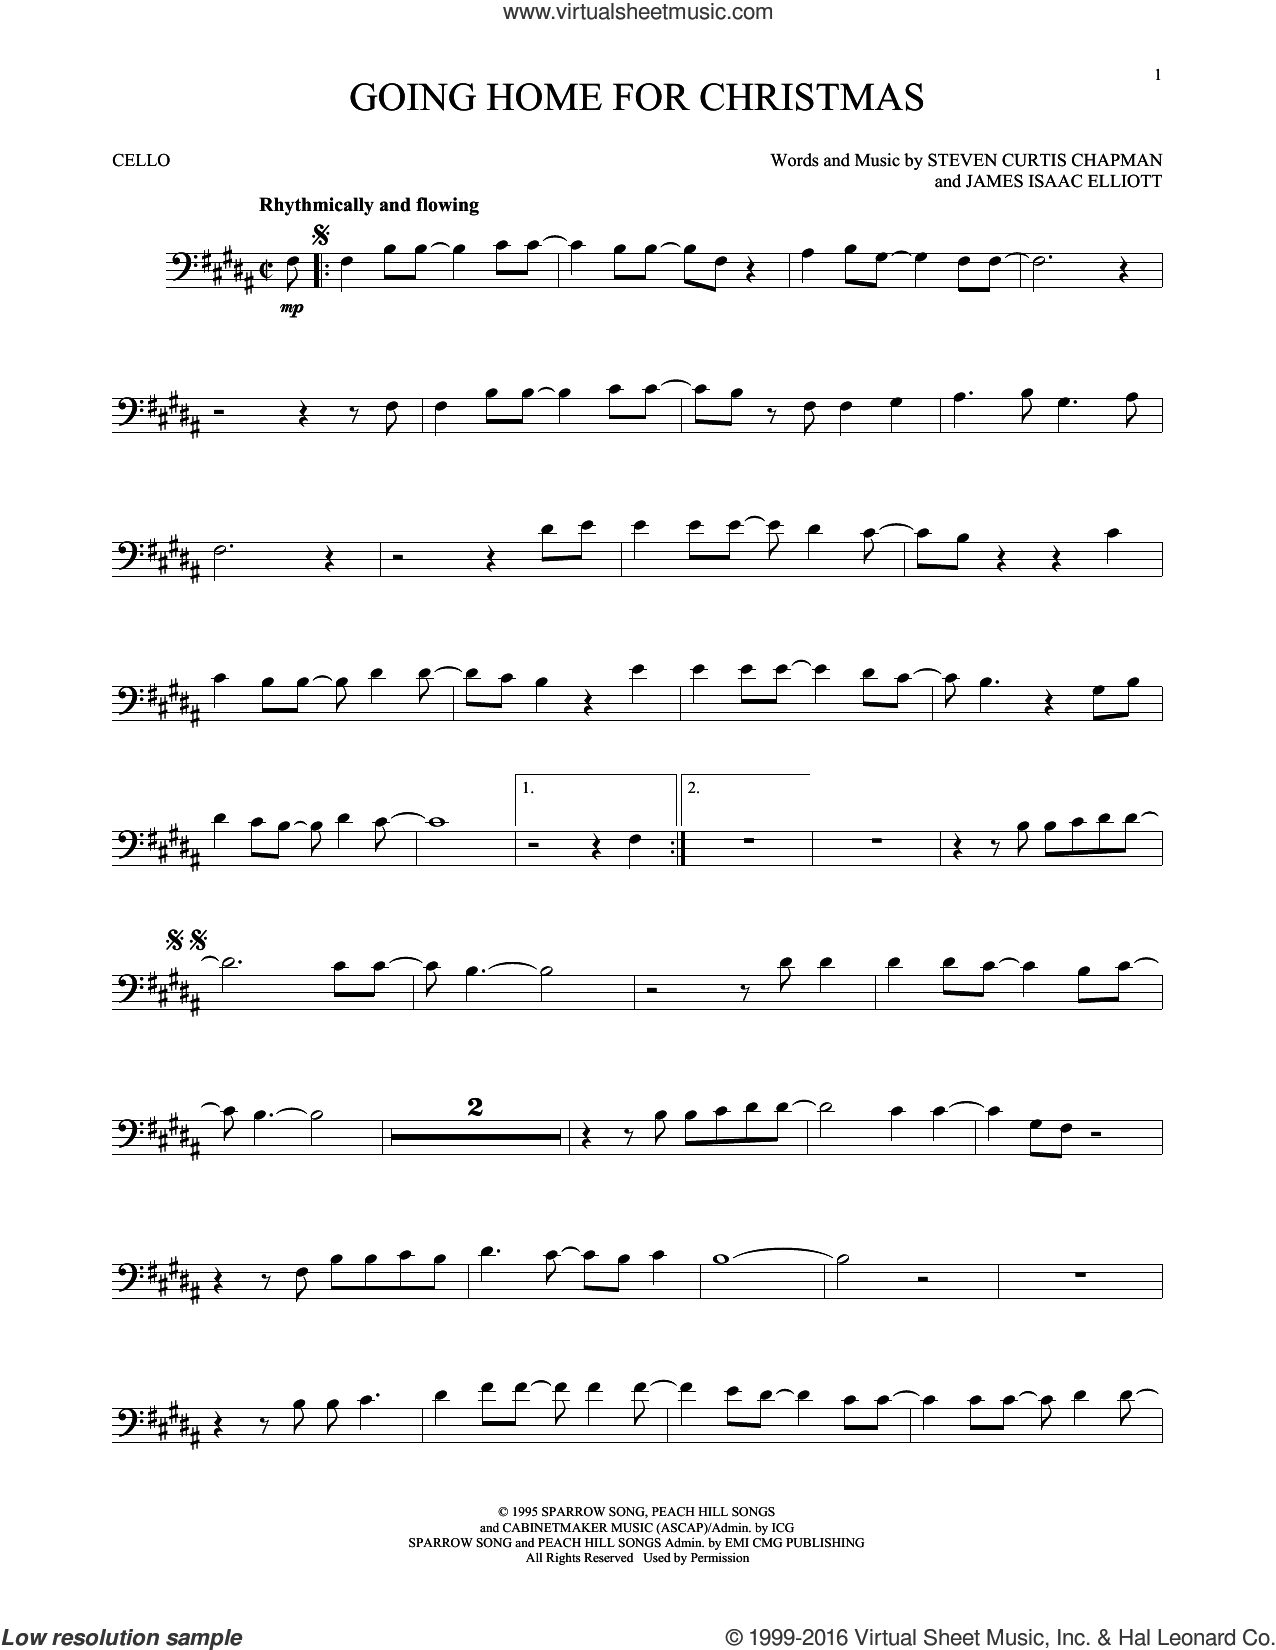 Going Home For Christmas sheet music for cello solo by Steven Curtis Chapman and James Isaac Elliott, intermediate skill level